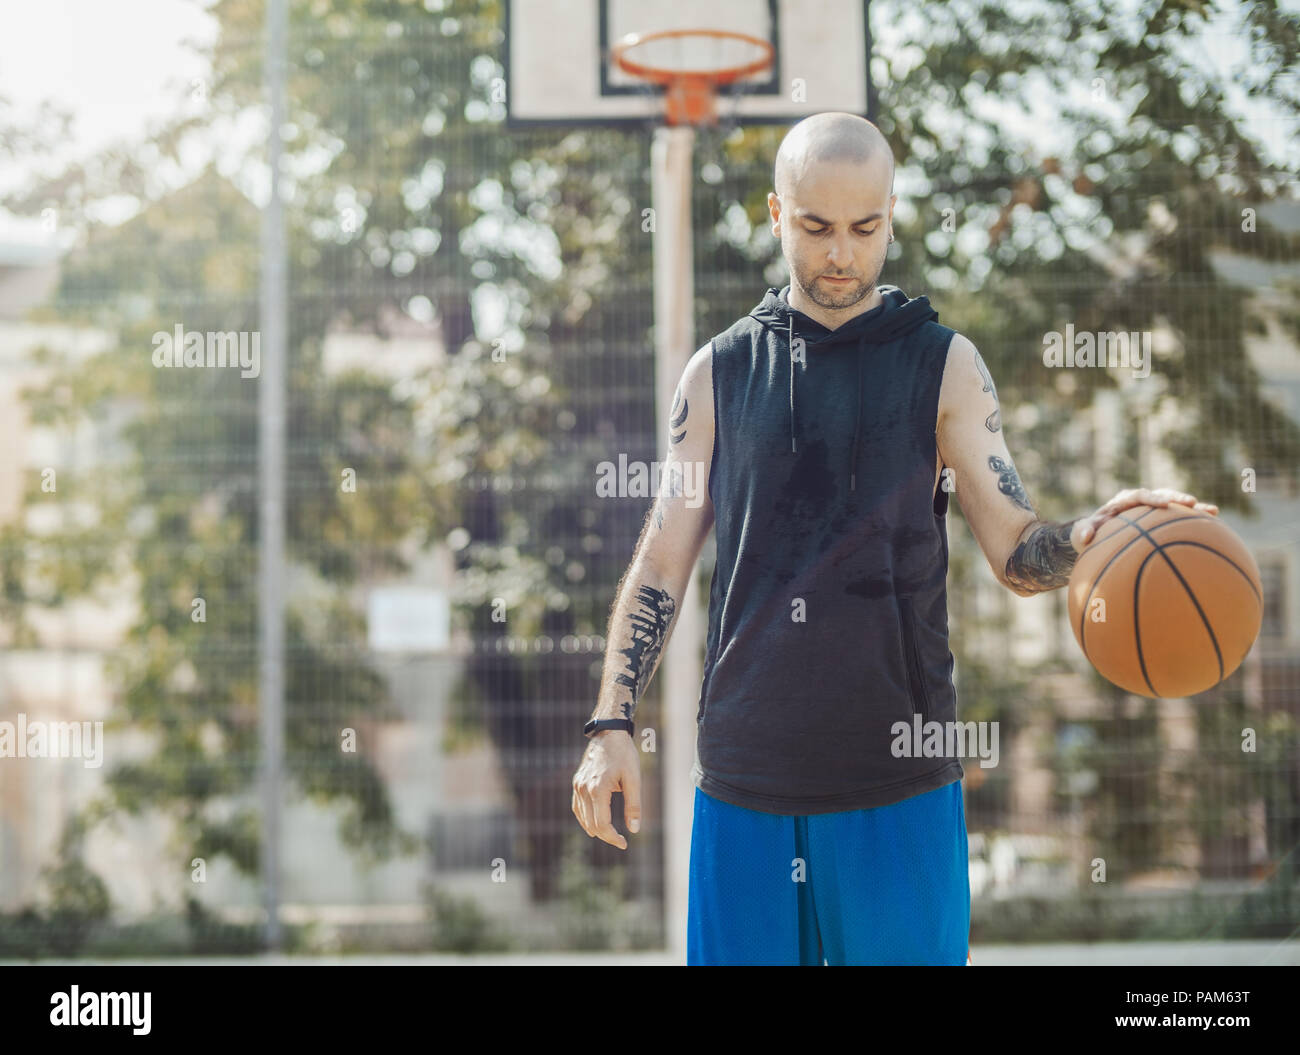 Bald attractive man playing basketball on the basketball court. Man is on focus and foreground, background is blurred. - Stock Image